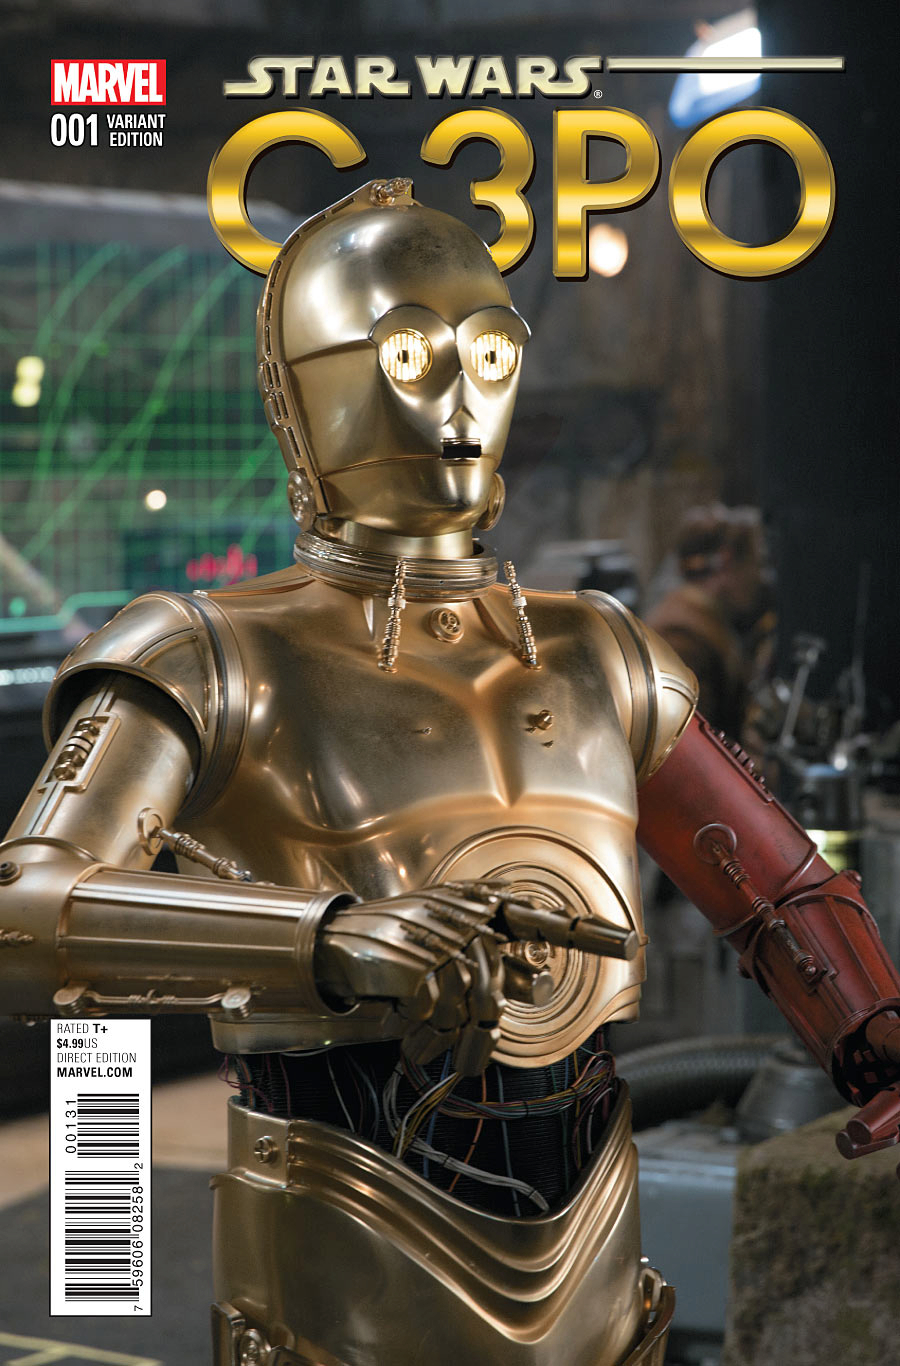 STAR WARS SPECIAL C-3PO #1 MOVIE VAR